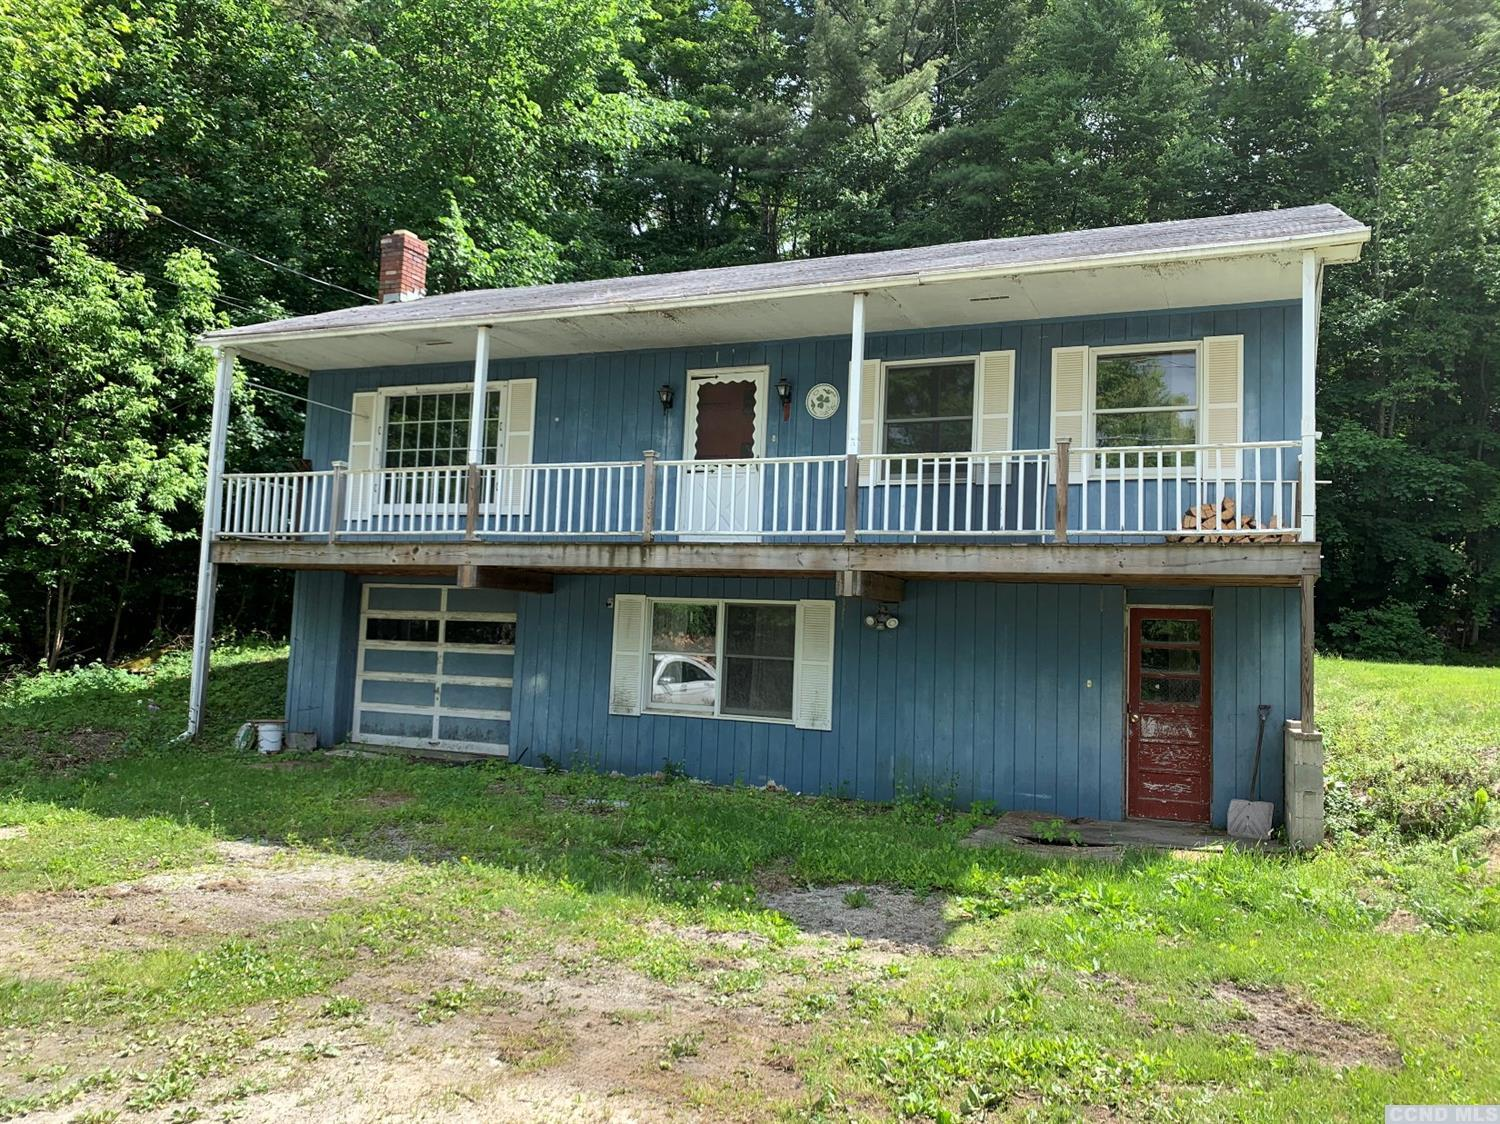 Fixer upper sold as is'' priced to sell. Could be a great starter home or a flip House.<div>Good bones. Close the Berkshire's, 25 mins to Albany, 2.5 to NYC.</div>